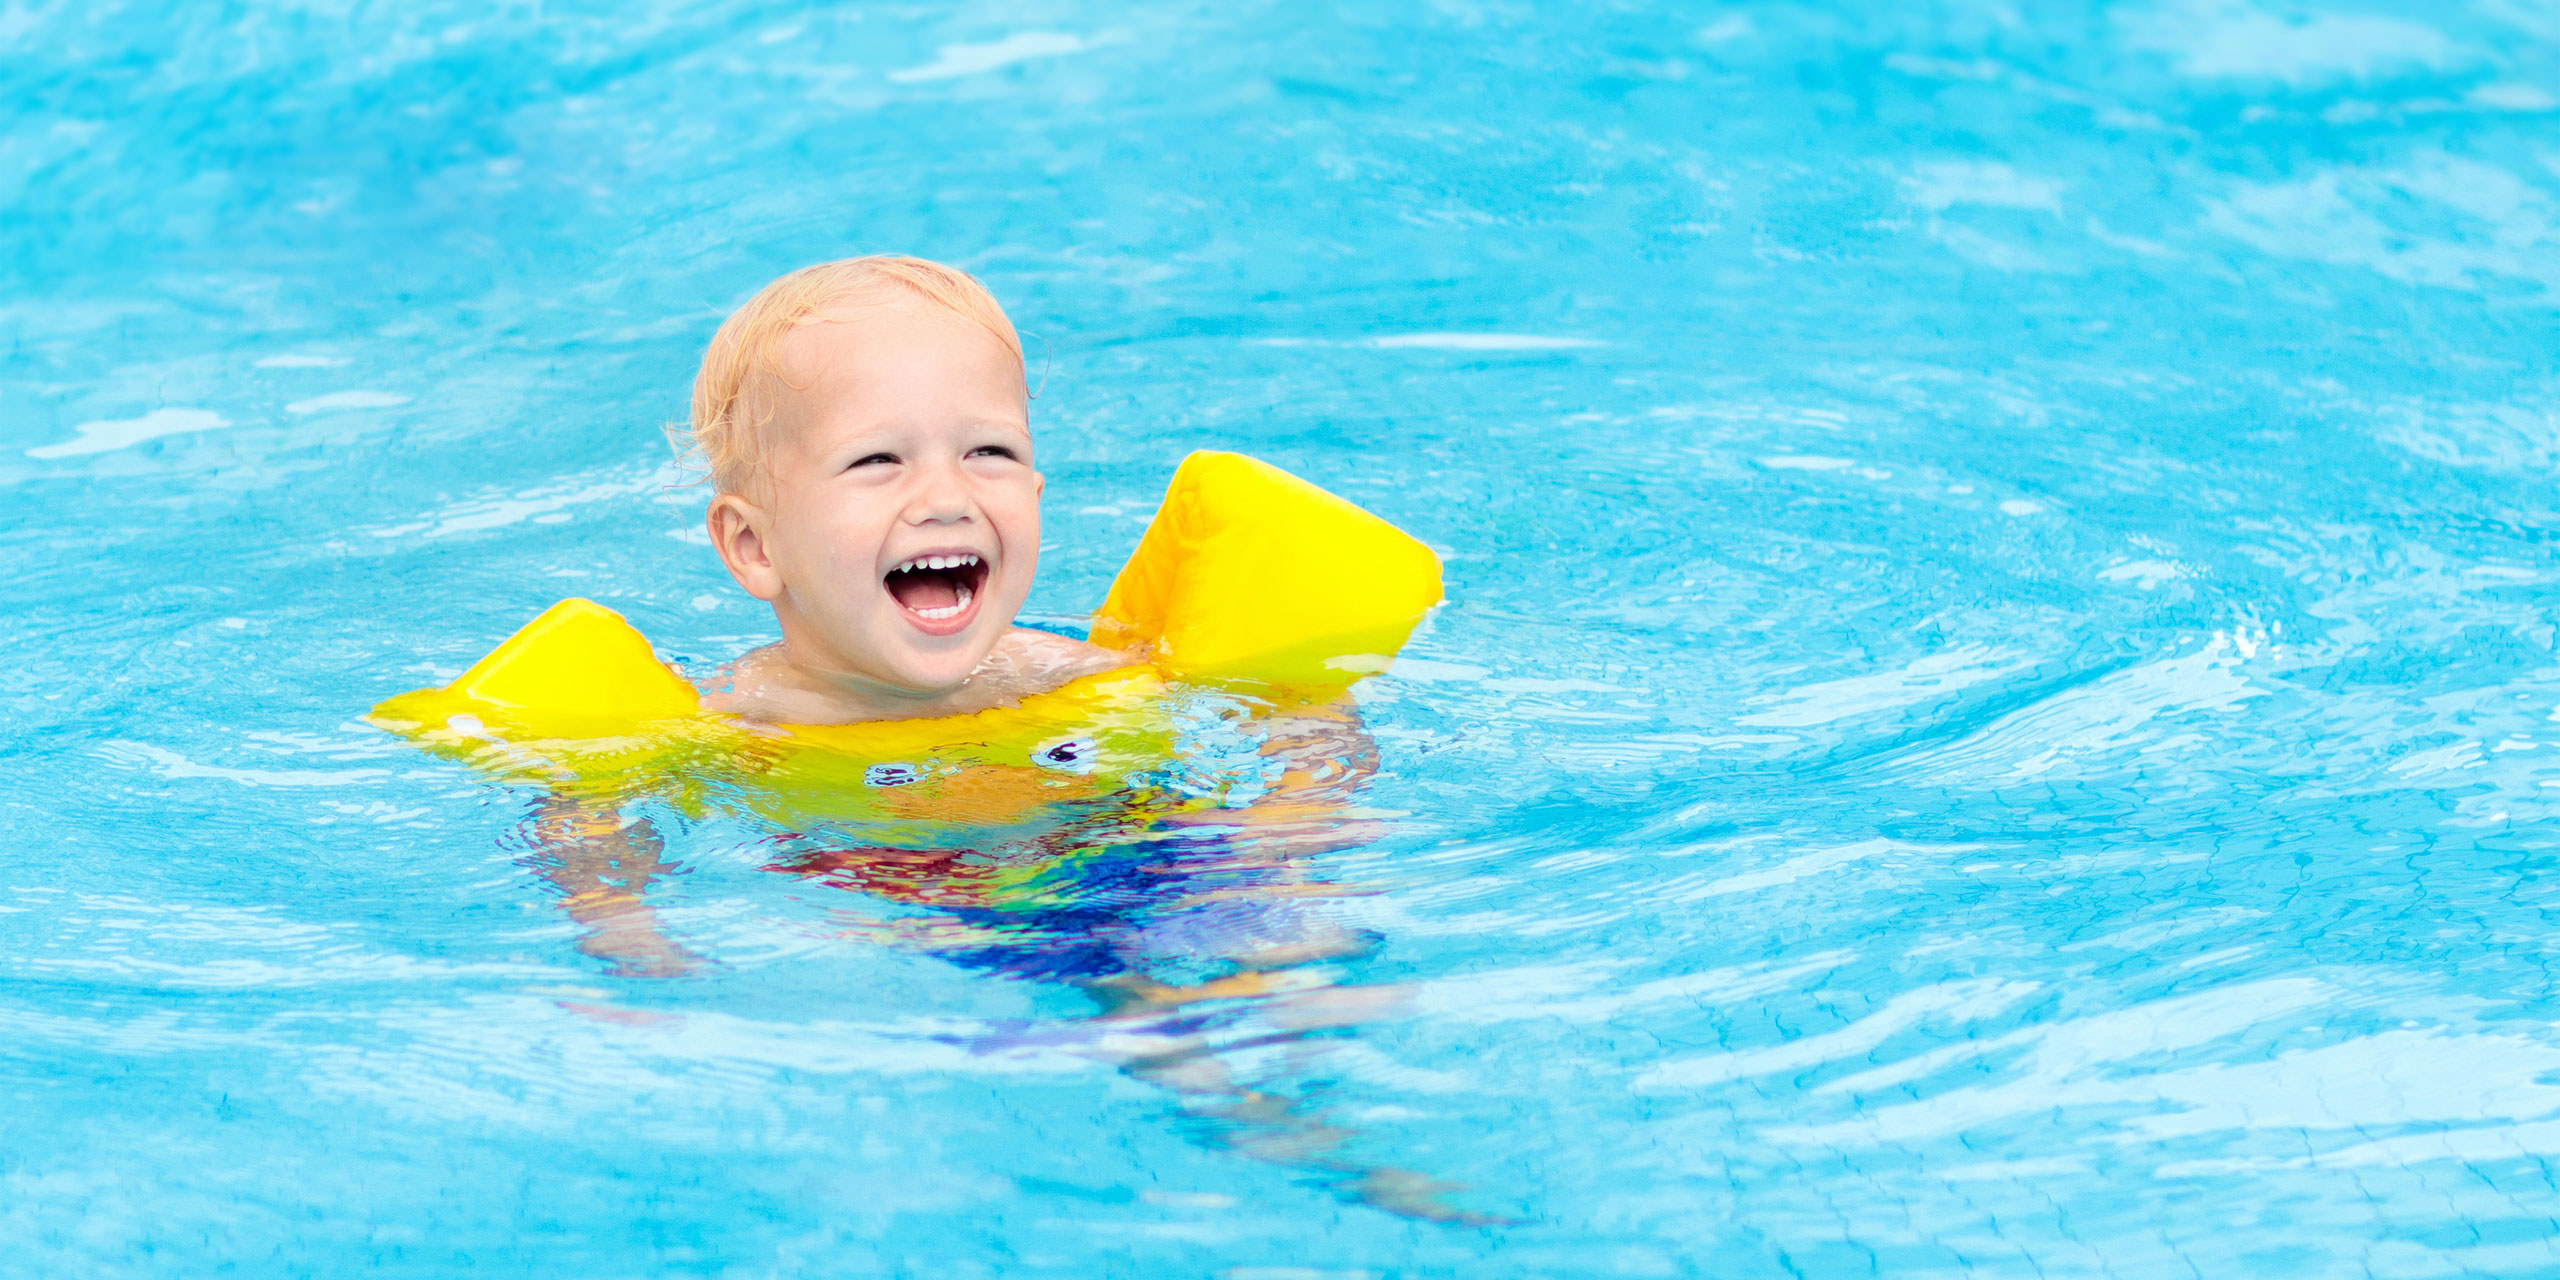 Toddler swimming in pool with swim floaties on; Courtesy of FamVeld/Shutterstock.com